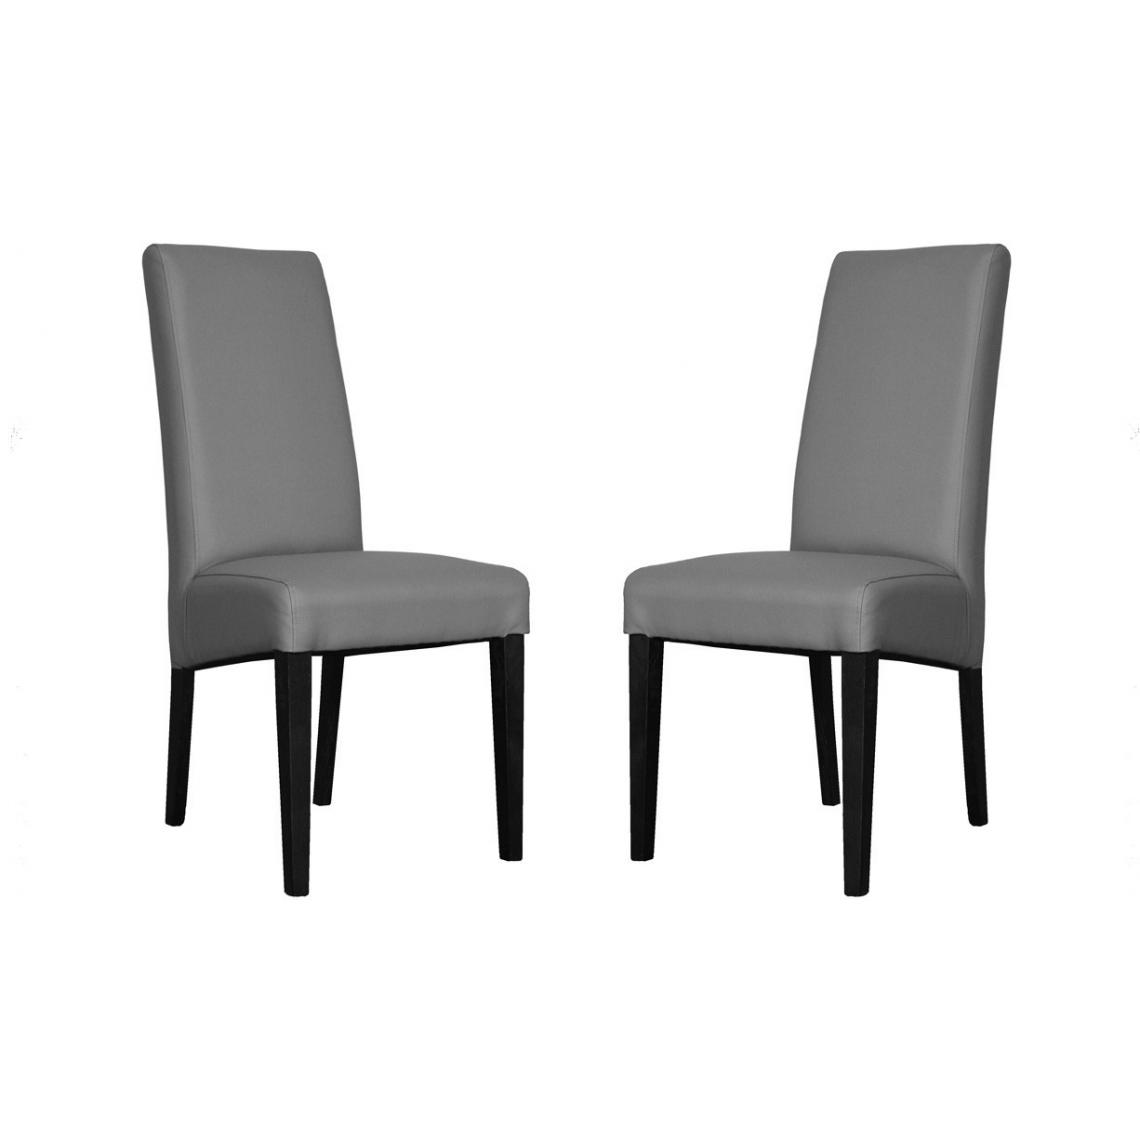 lot de 2 chaises adria gris 3suisses. Black Bedroom Furniture Sets. Home Design Ideas